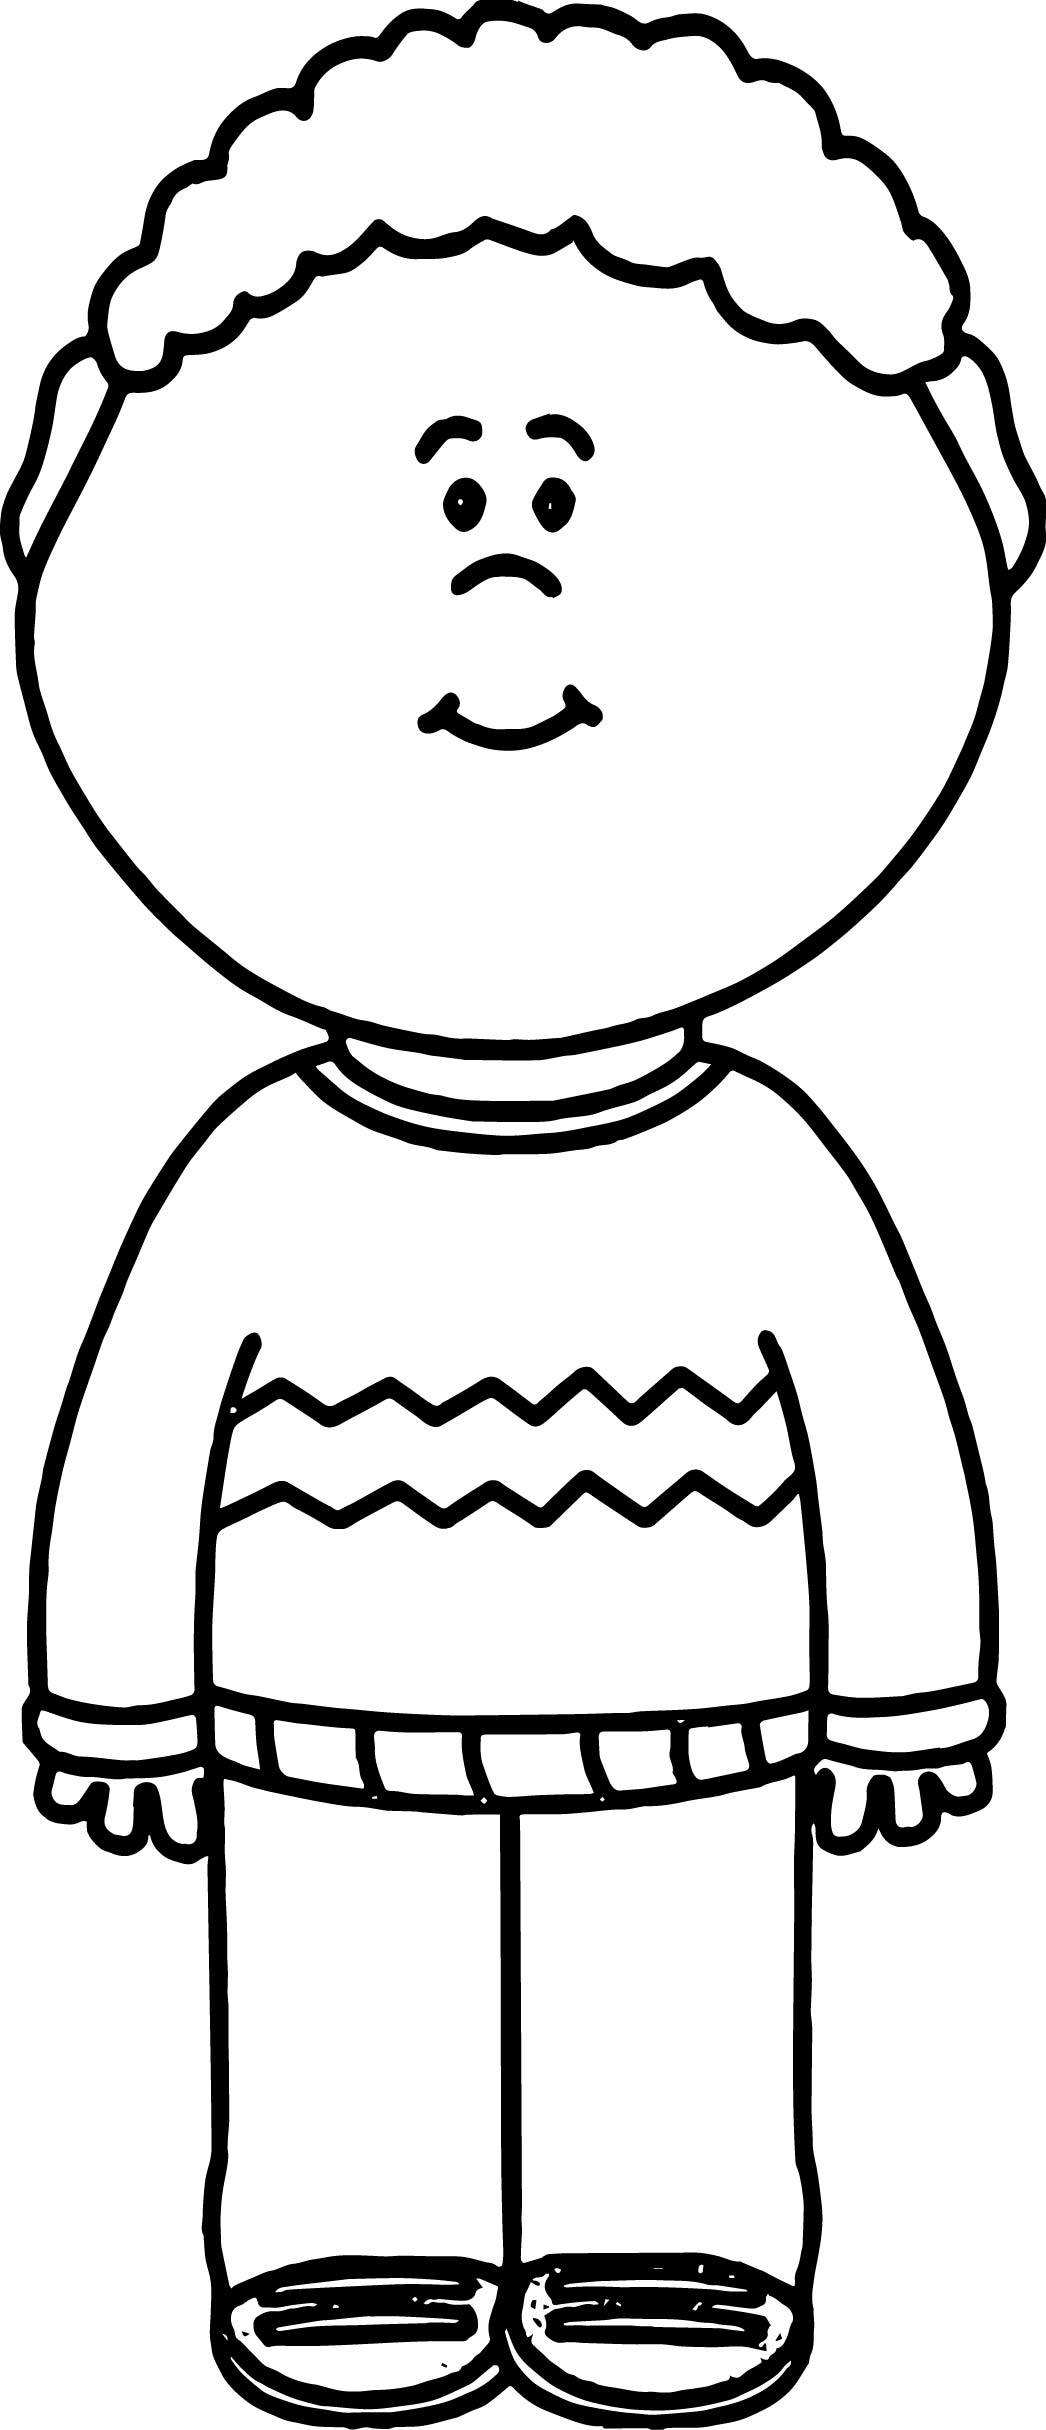 rowdyruff boys online coloring pages - photo#14